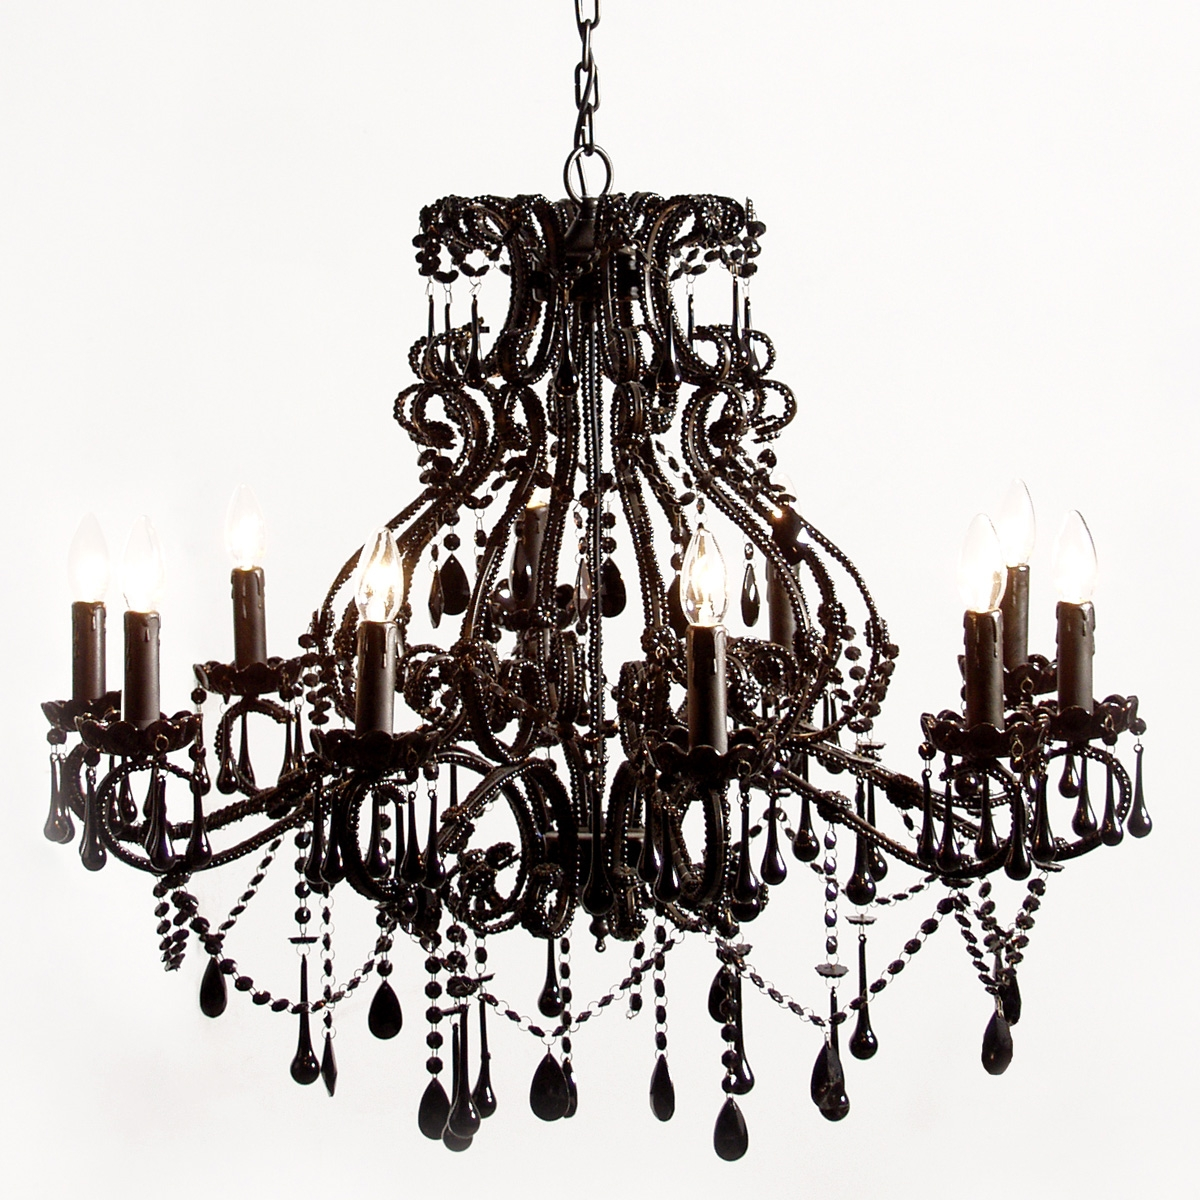 Awesome Black Bedroom Chandelier Images Walldenco Walldenco Regarding Black Chandeliers (#2 of 12)